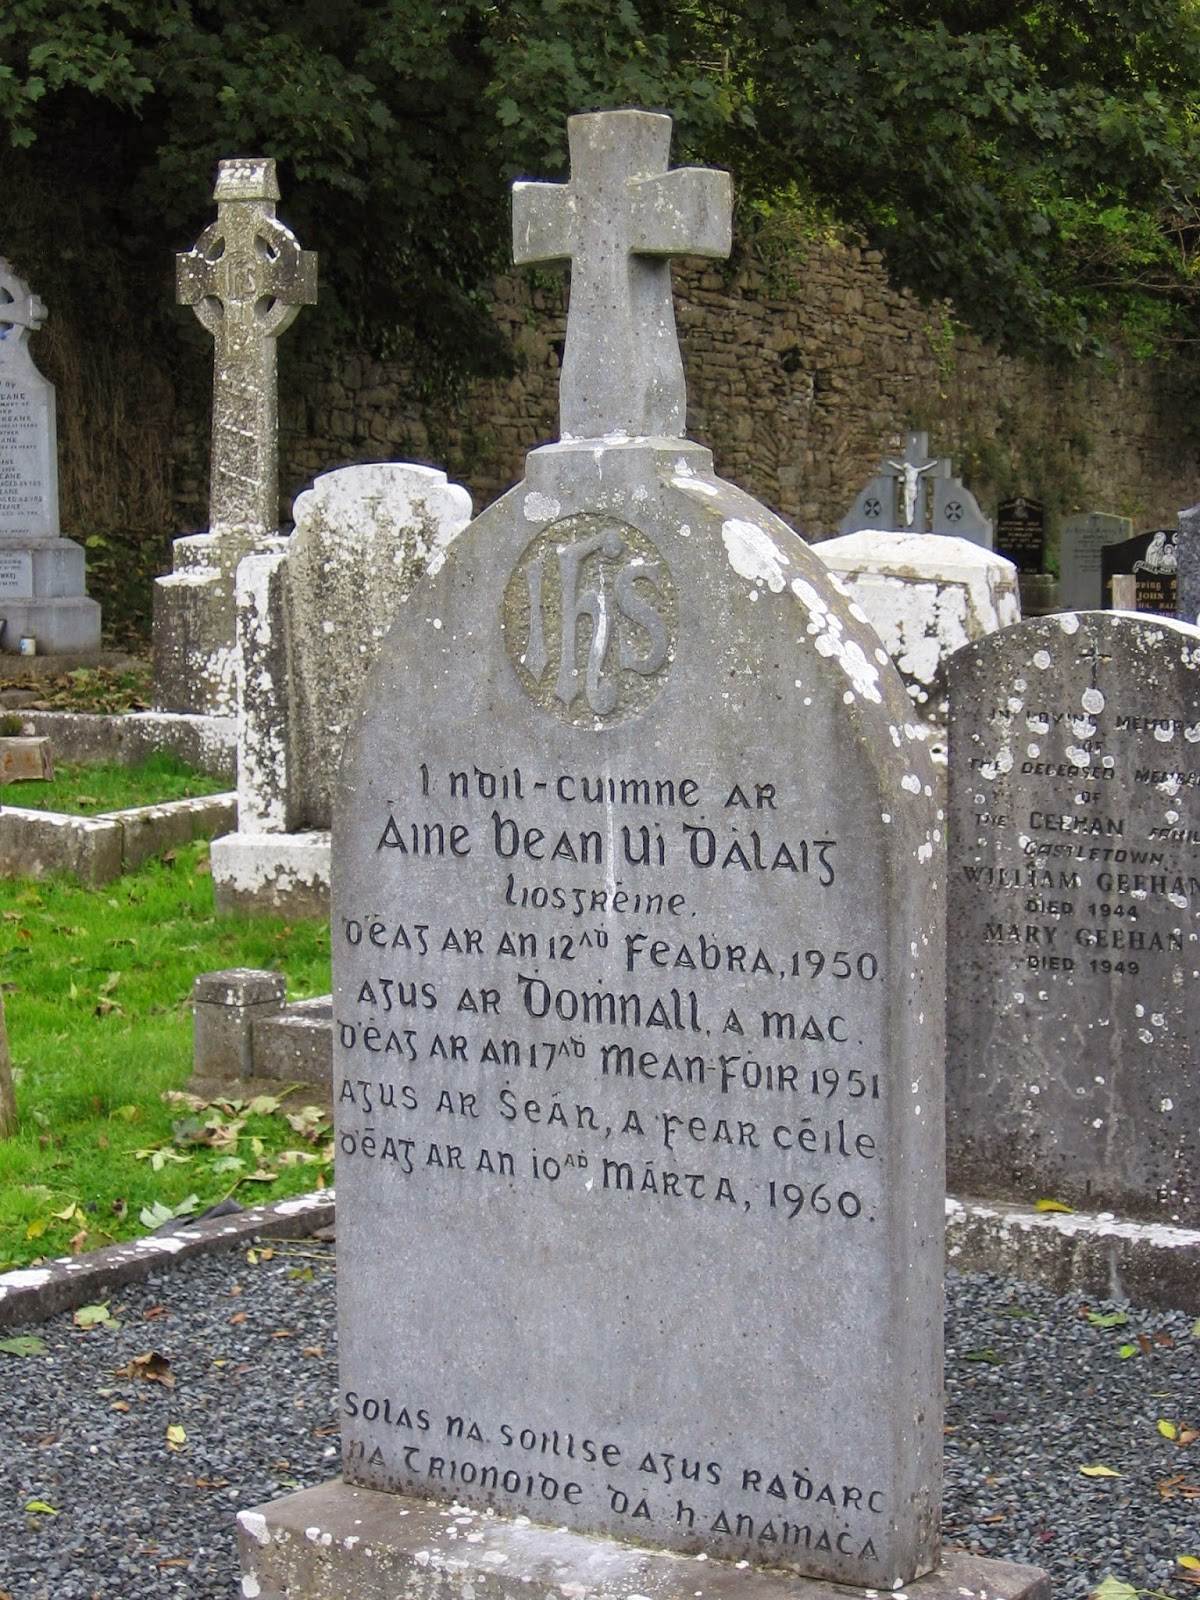 1950s headstone engraved in Irish language found at Castletown Catholic church ruins in southern County Limerick